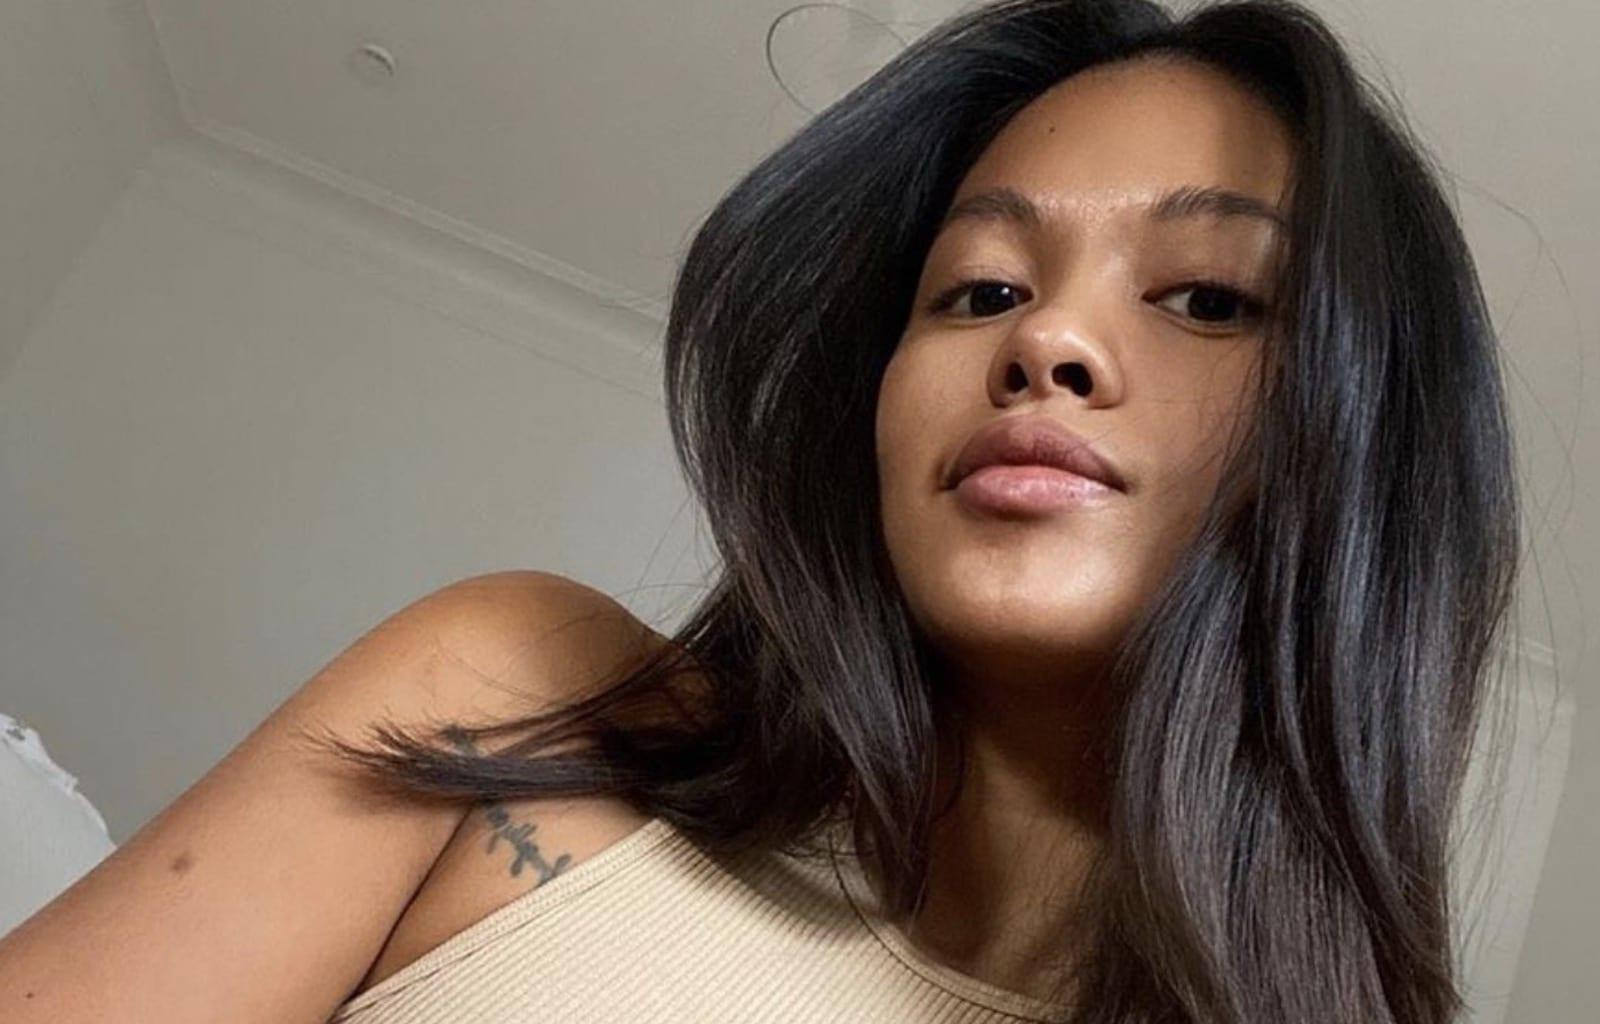 Ammika Harris Shows Off Her Long Legs In This Revealing Outfit